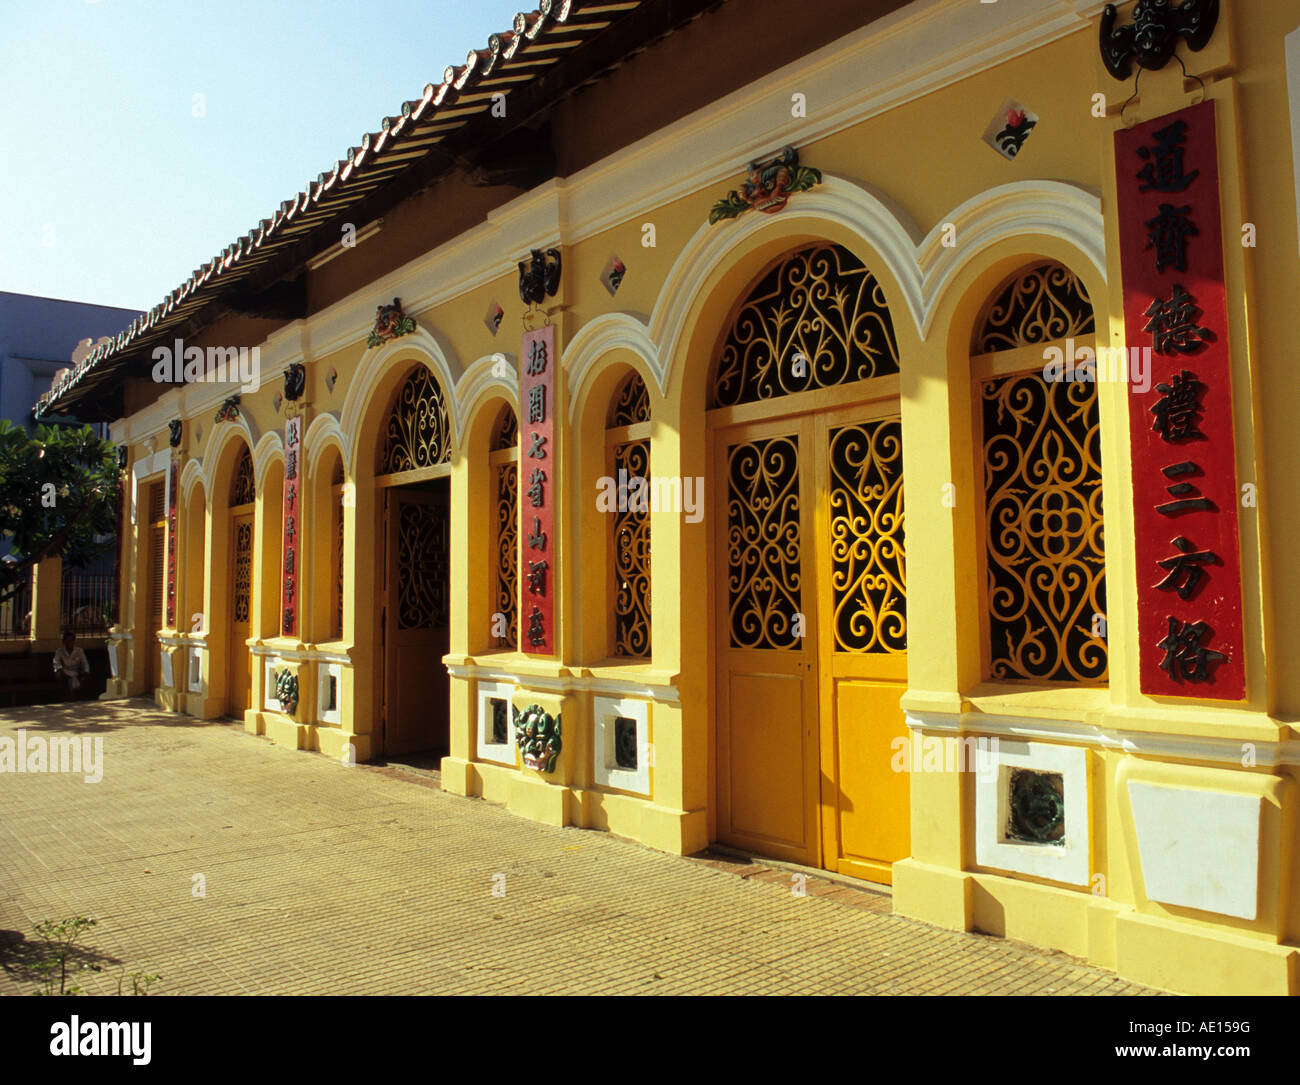 Arched doors and windows to the front of the Dinh Than Chau Phu Temple, Chau Doc, Viet Nam - Stock Image